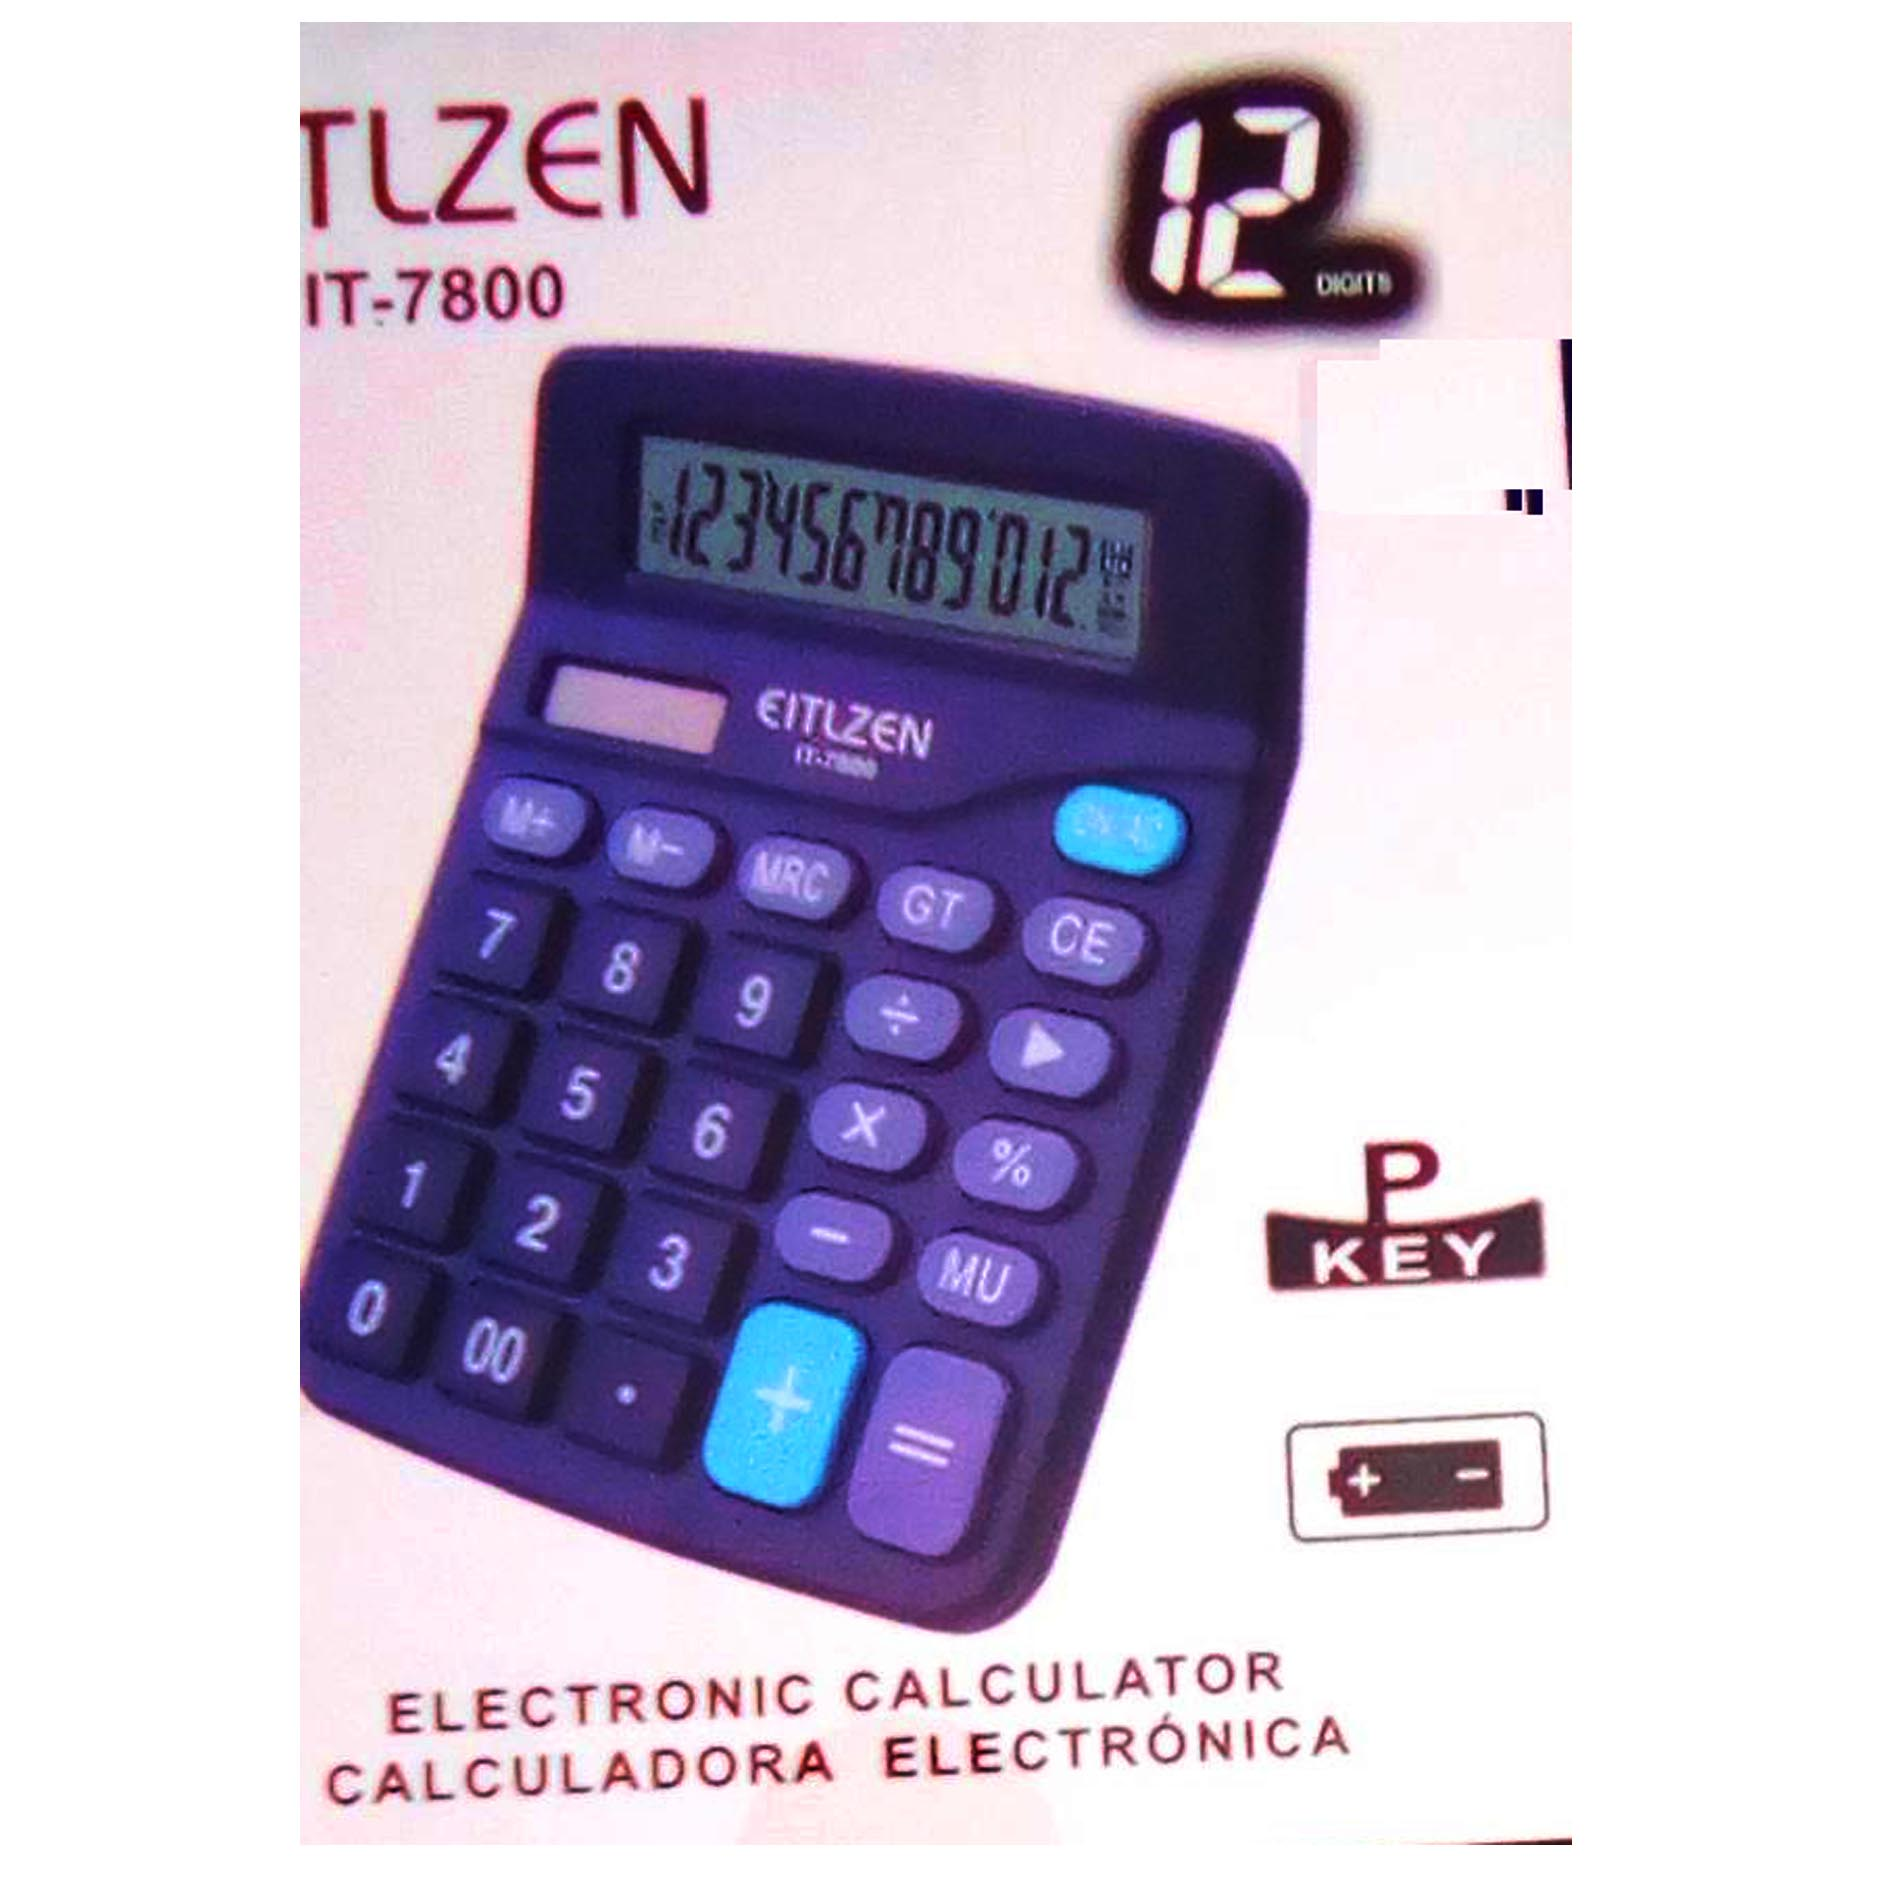 Original calculator for business